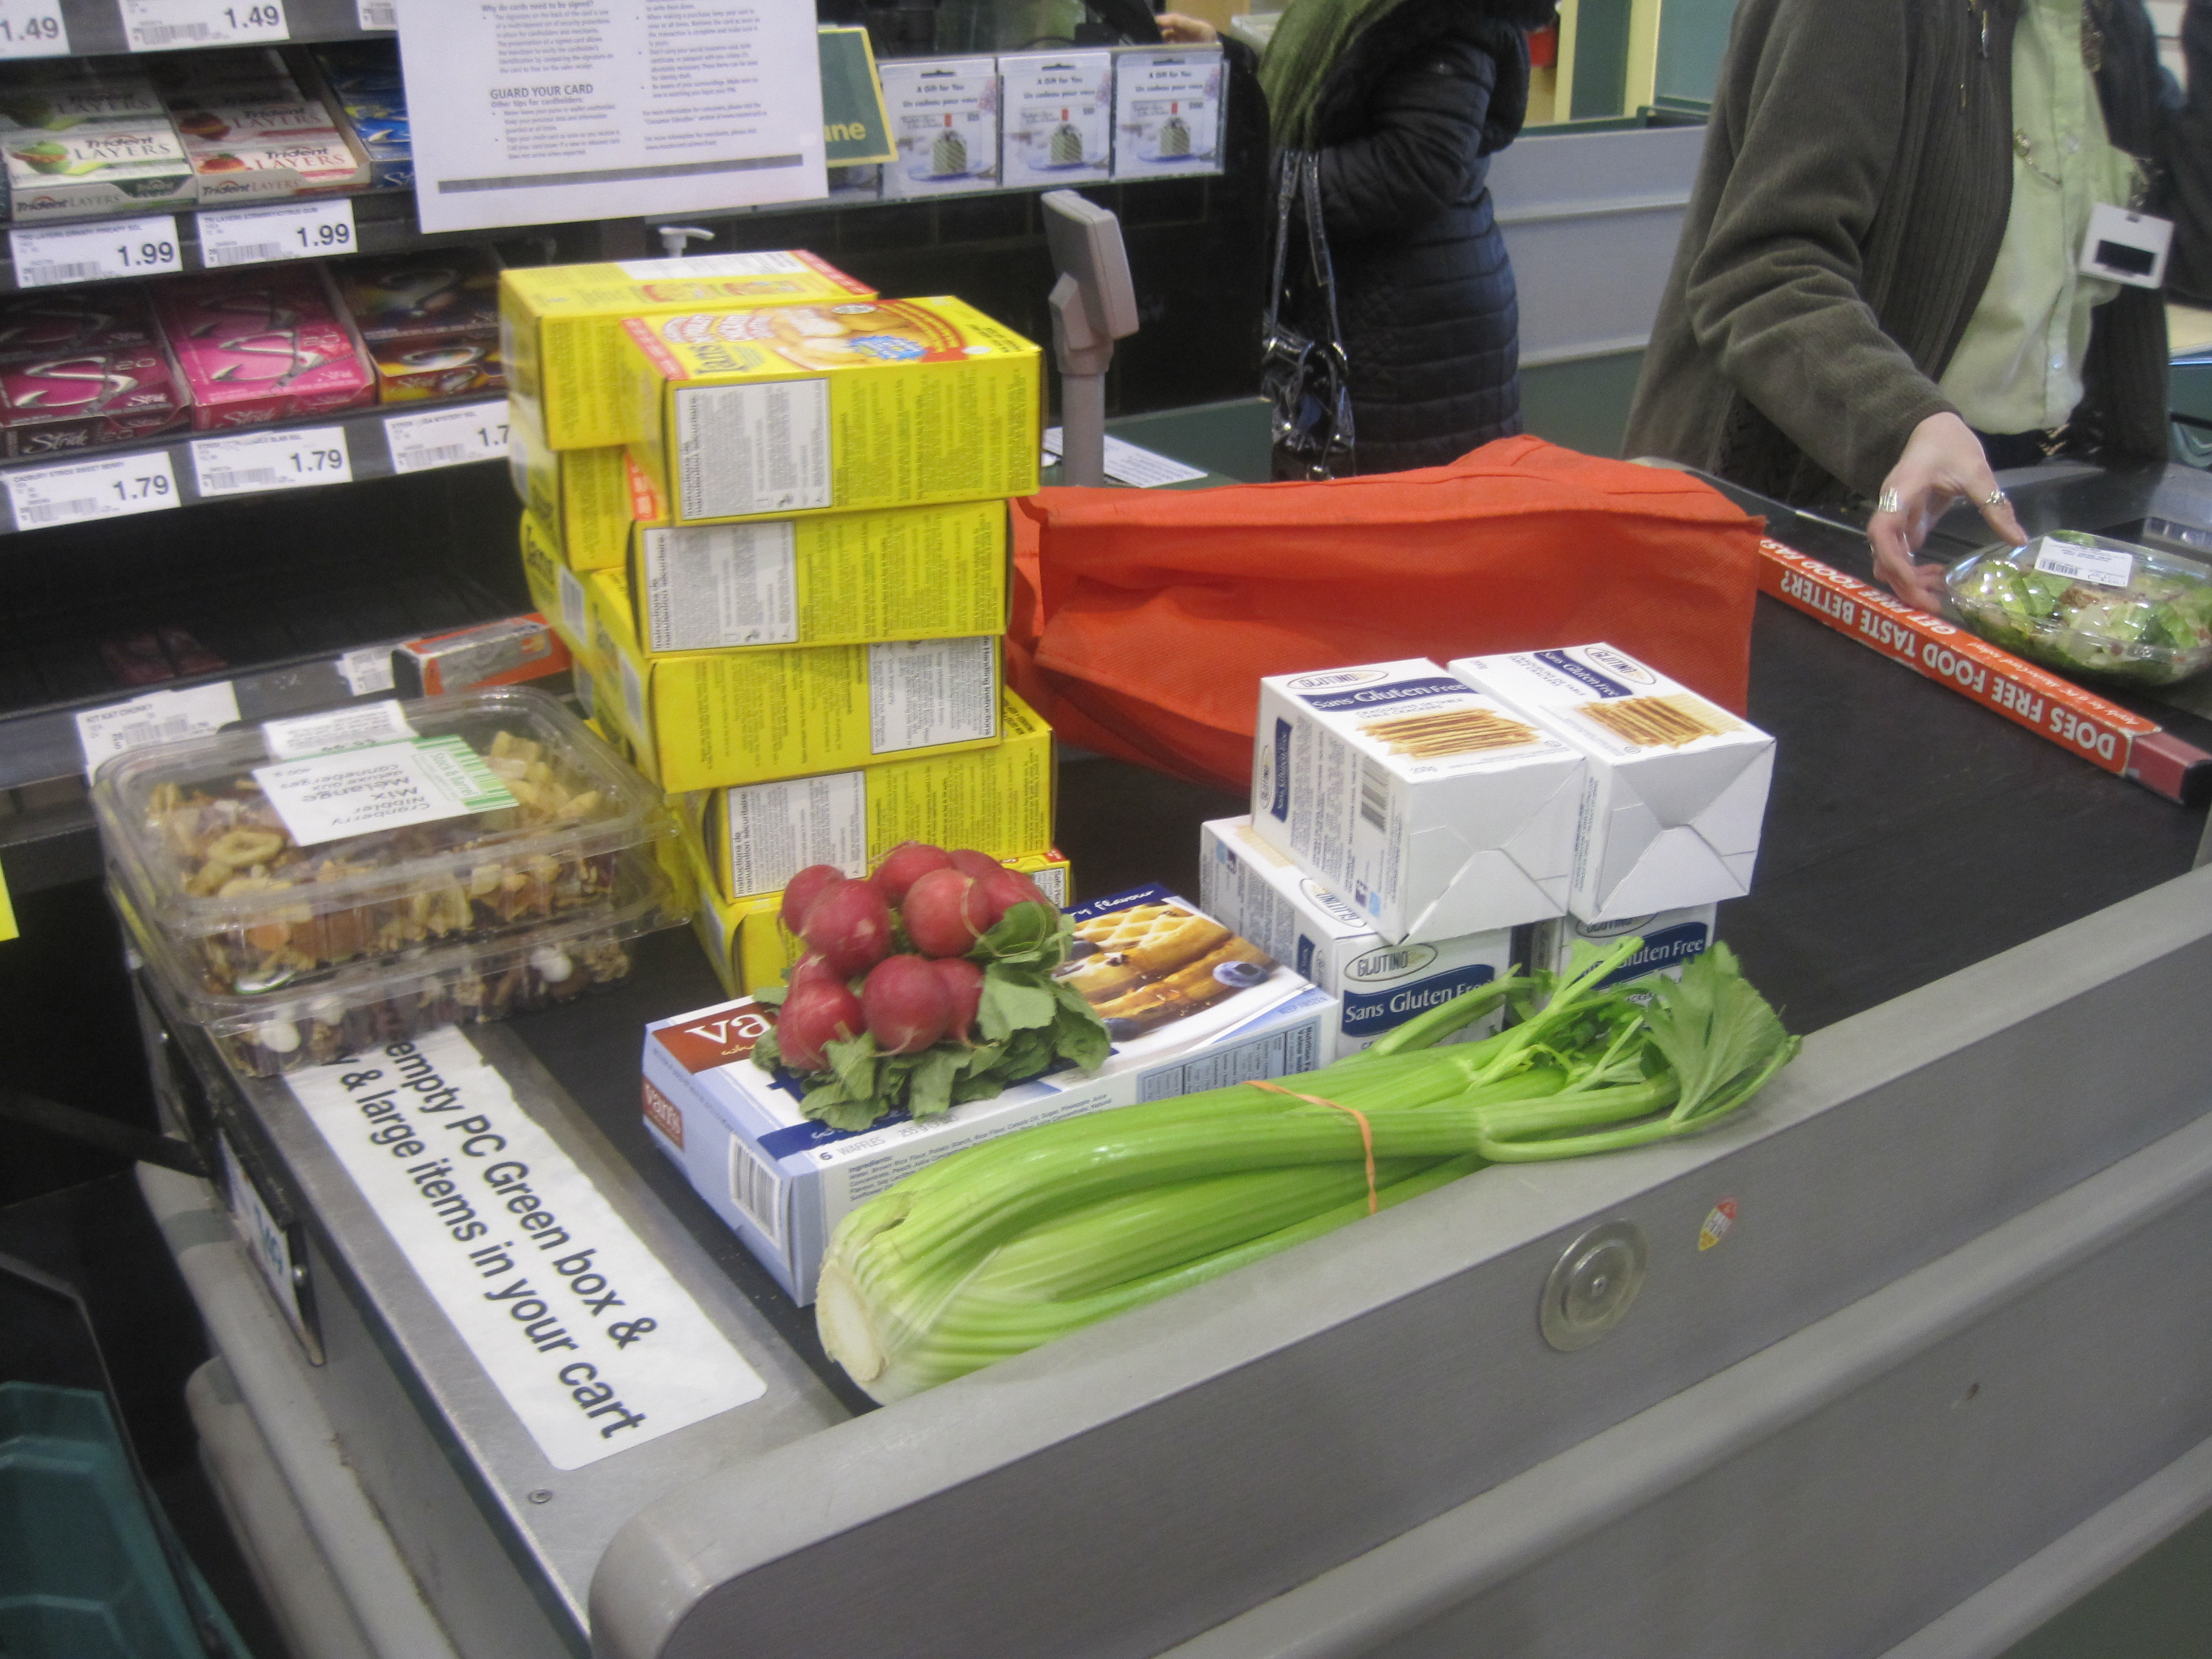 ITEMS VS NUMBERS AT GROCERY CHECKOUT